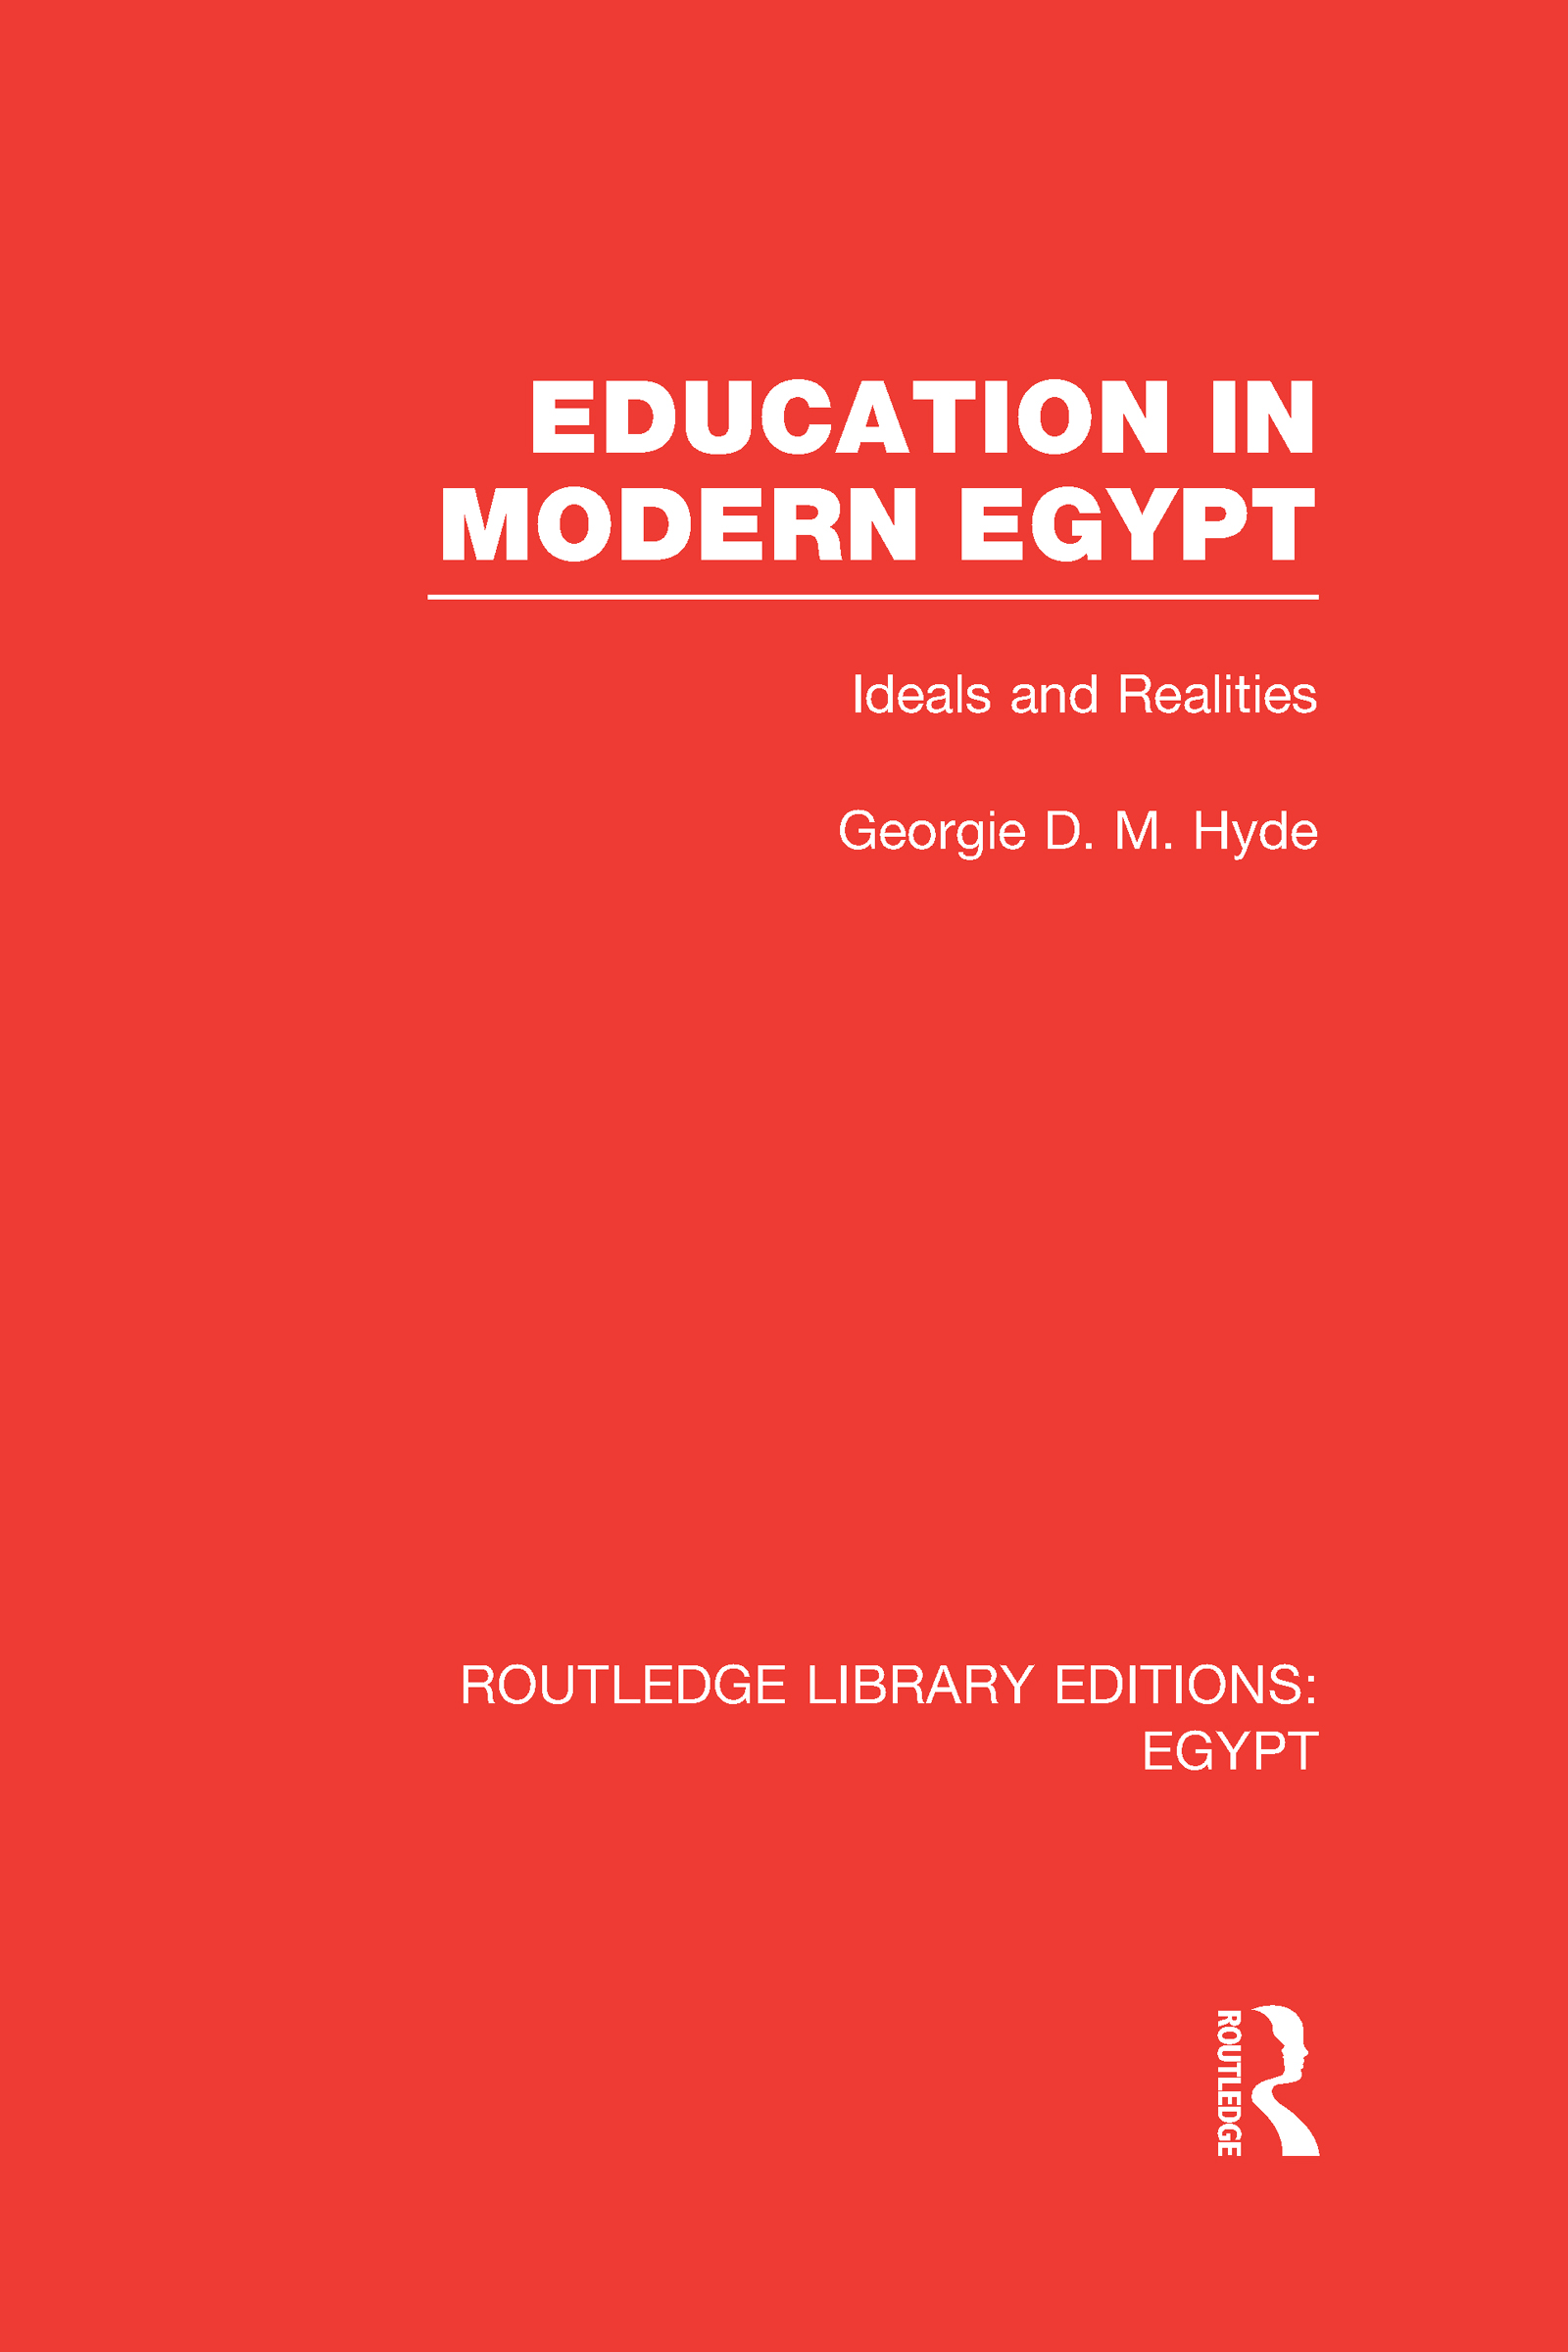 Education in Modern Egypt (RLE Egypt): Ideals and Realities (Hardback) book cover